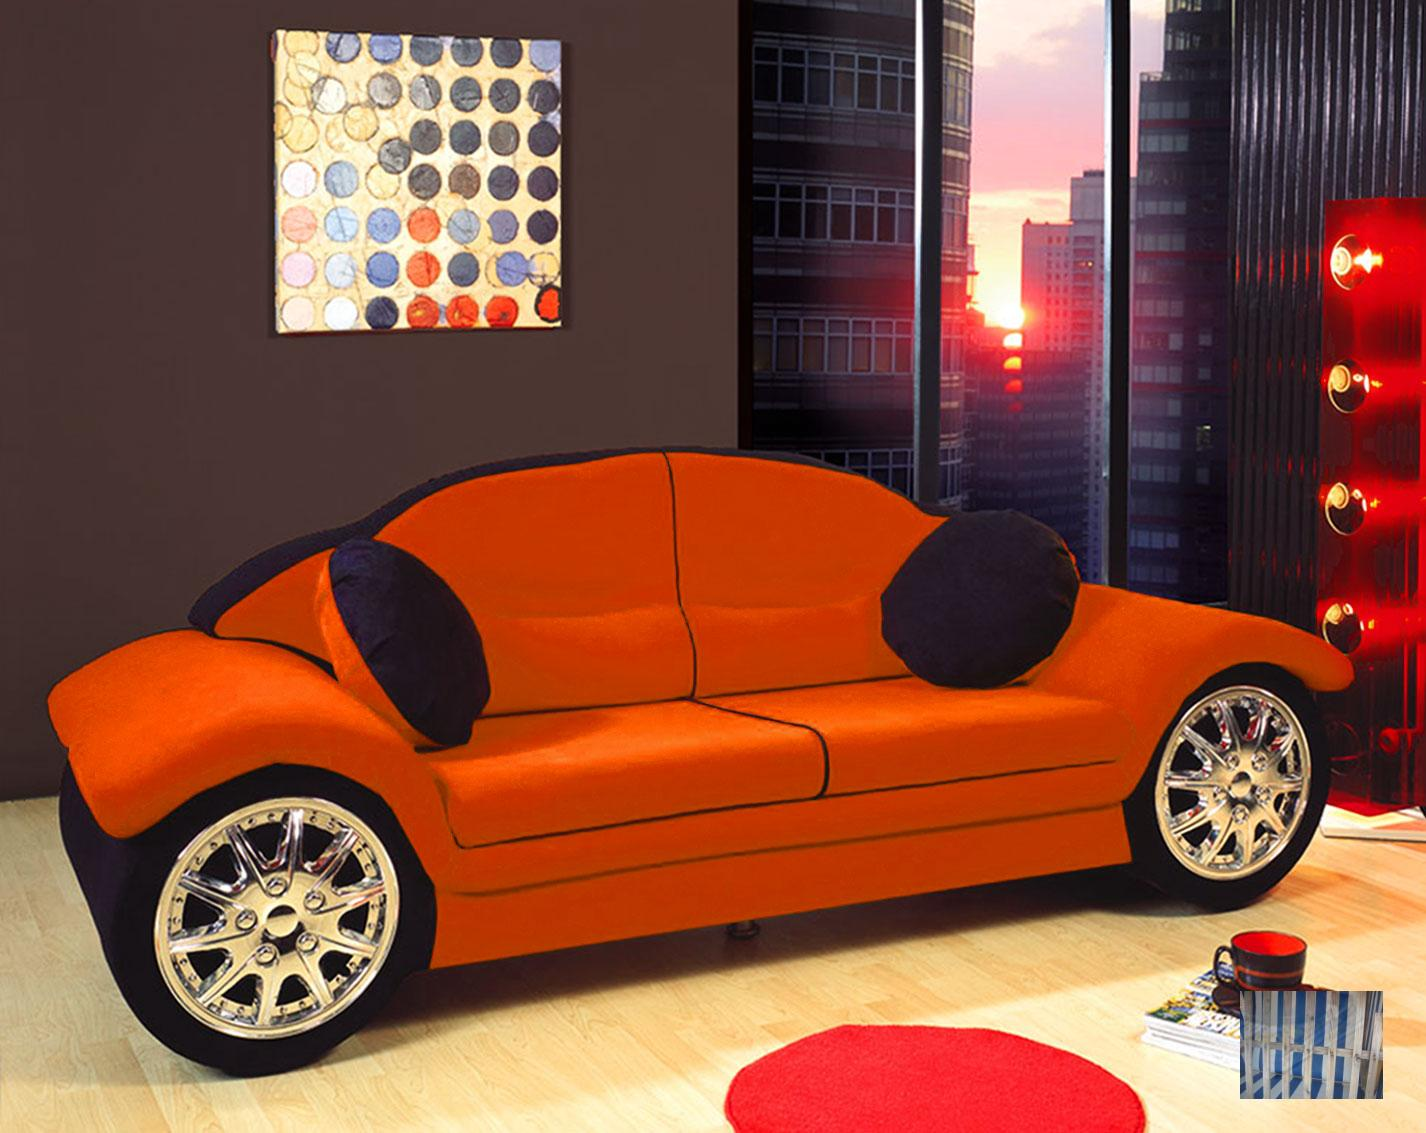 500 kindersofa jugendsofa auto 2 sitzer orange m ebay. Black Bedroom Furniture Sets. Home Design Ideas